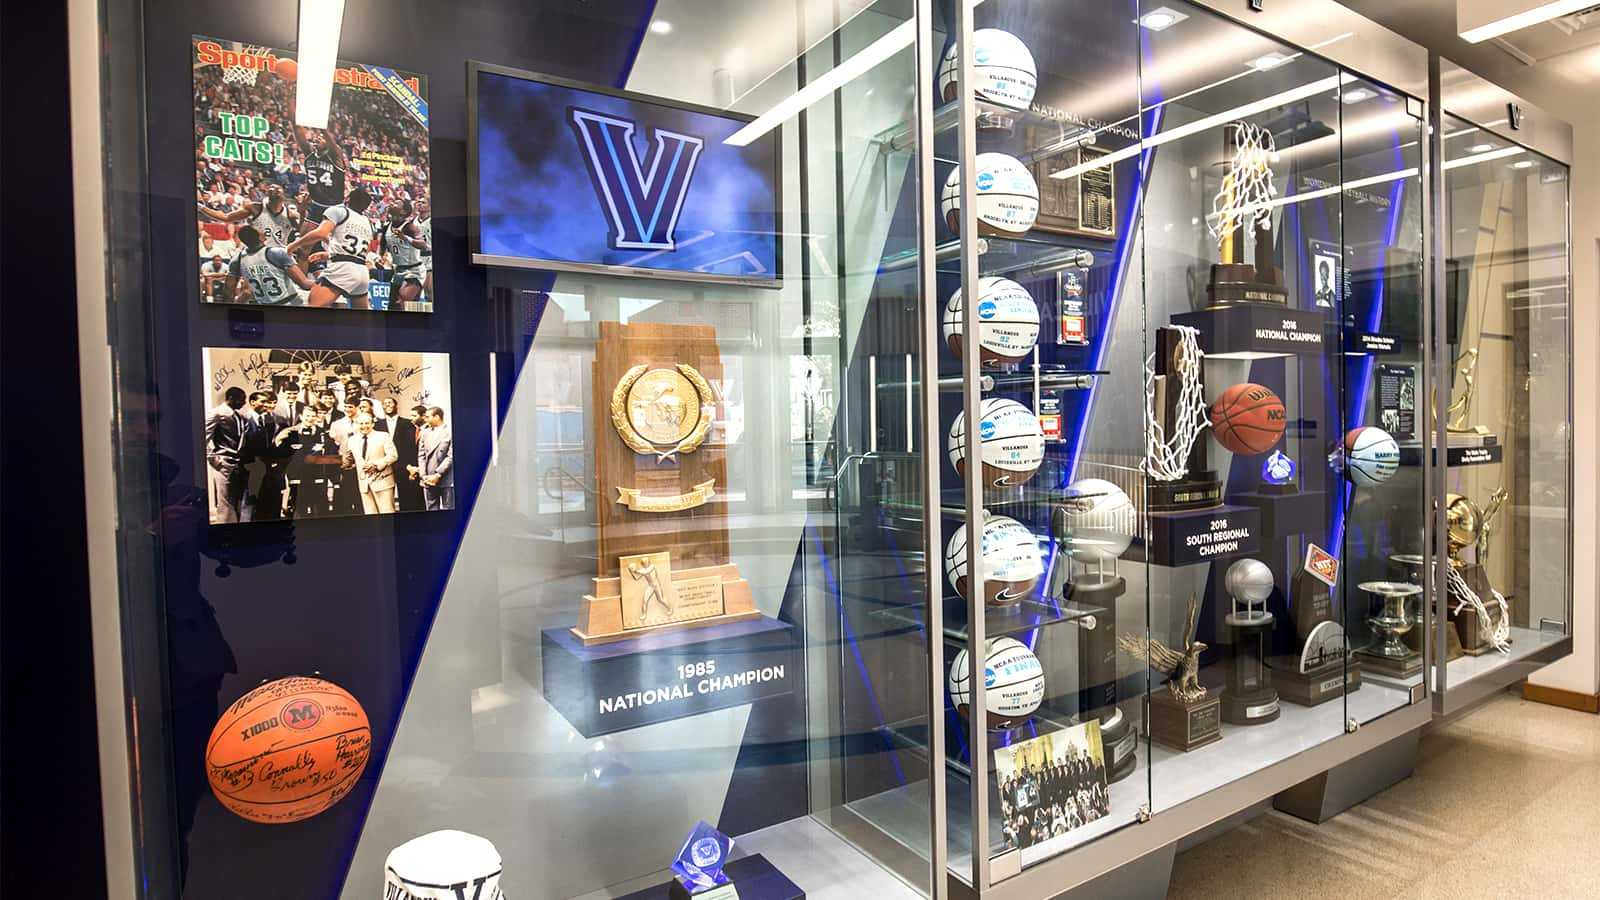 Close-up view of the Wildcat Basketball trophy case in the rear of the atrium of the Villanova Davis Center.